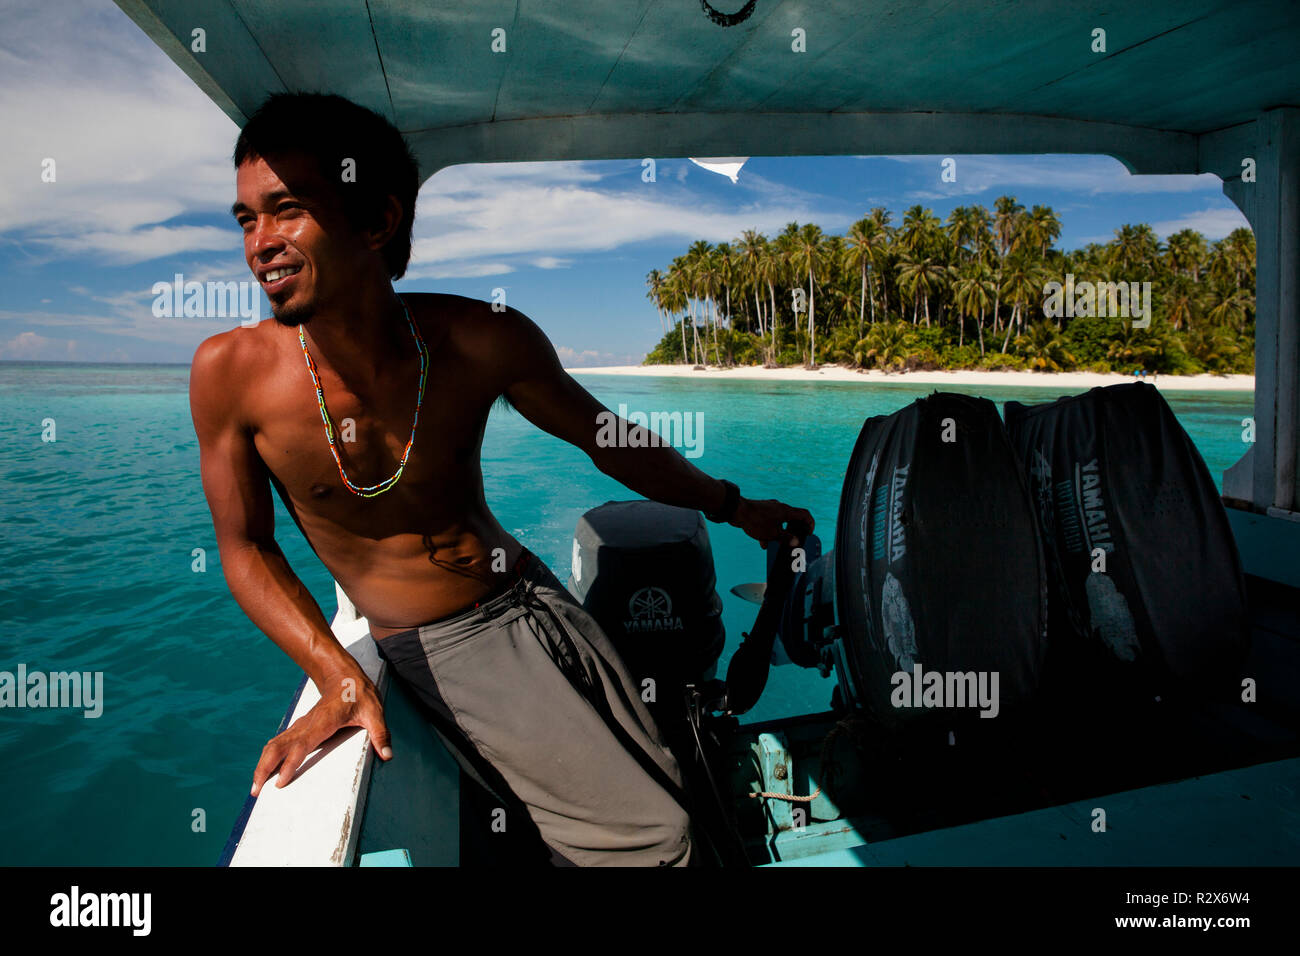 Surf guide Ibrahim guiding a trip to remote surf break 'John Candy's'. - Stock Image